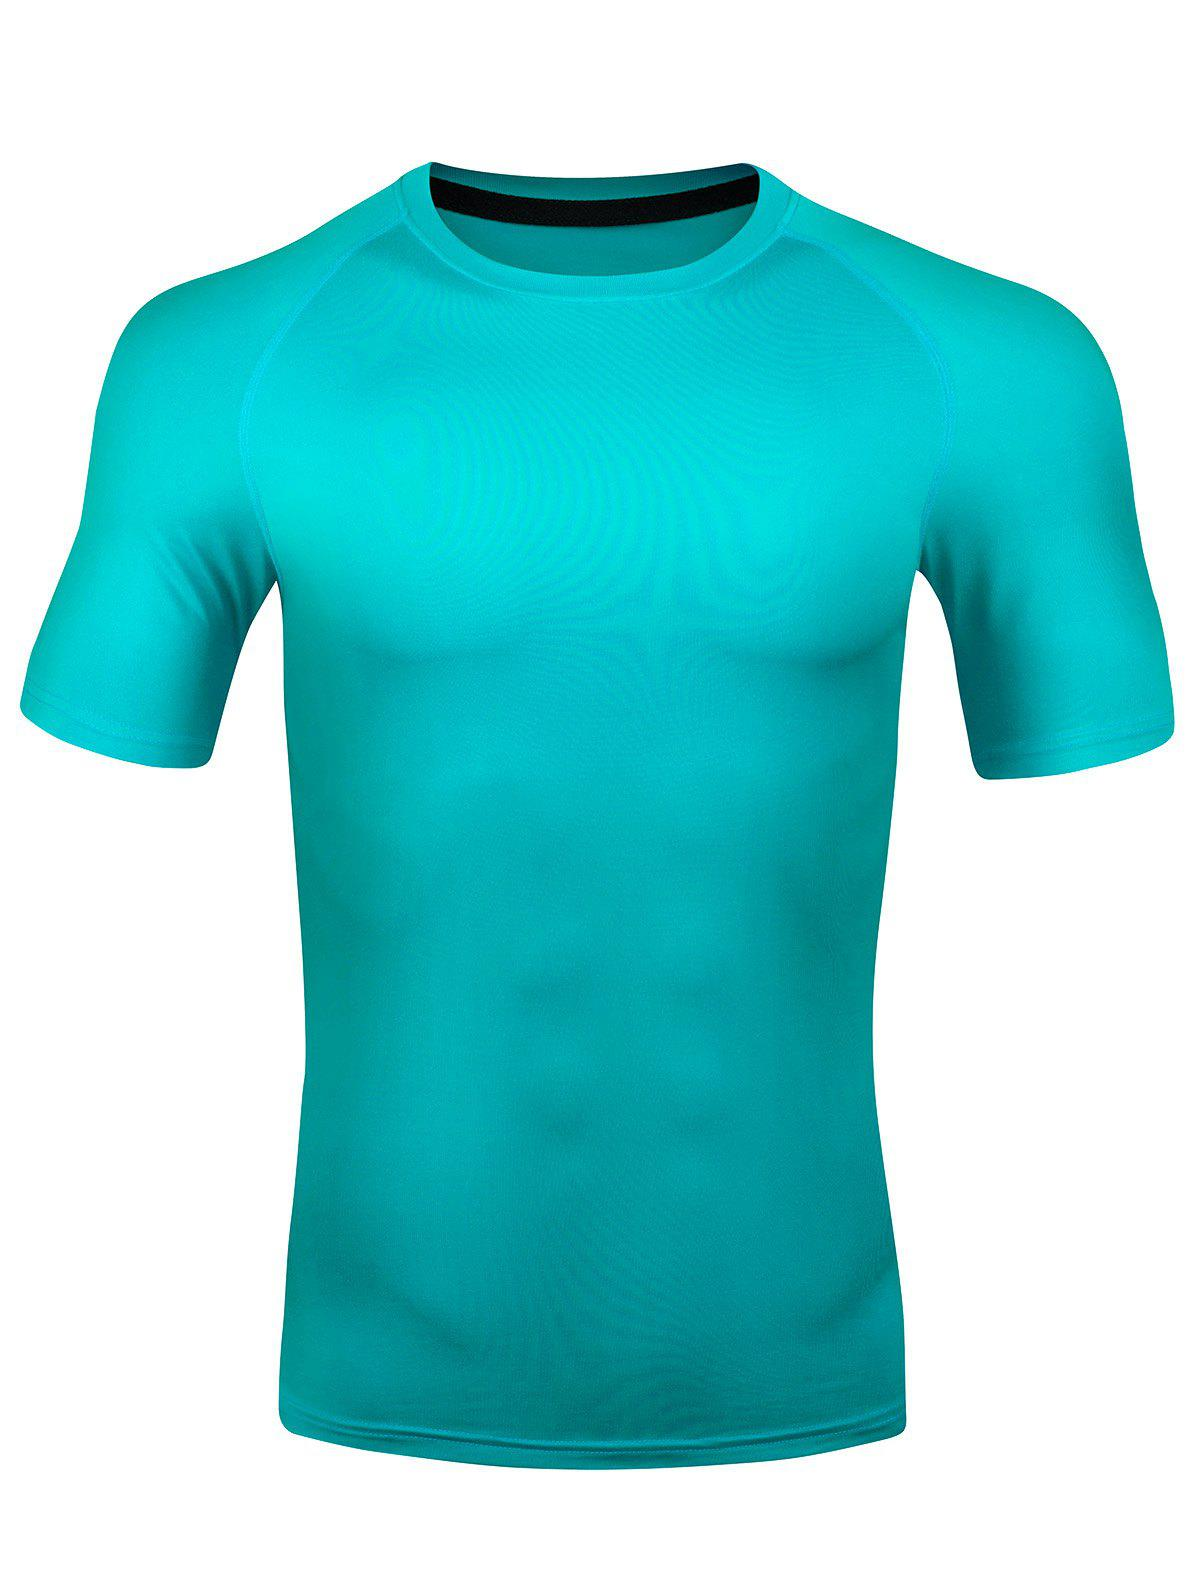 Unique Short Sleeve Quick Dry Stretchy Fitness T-shirt